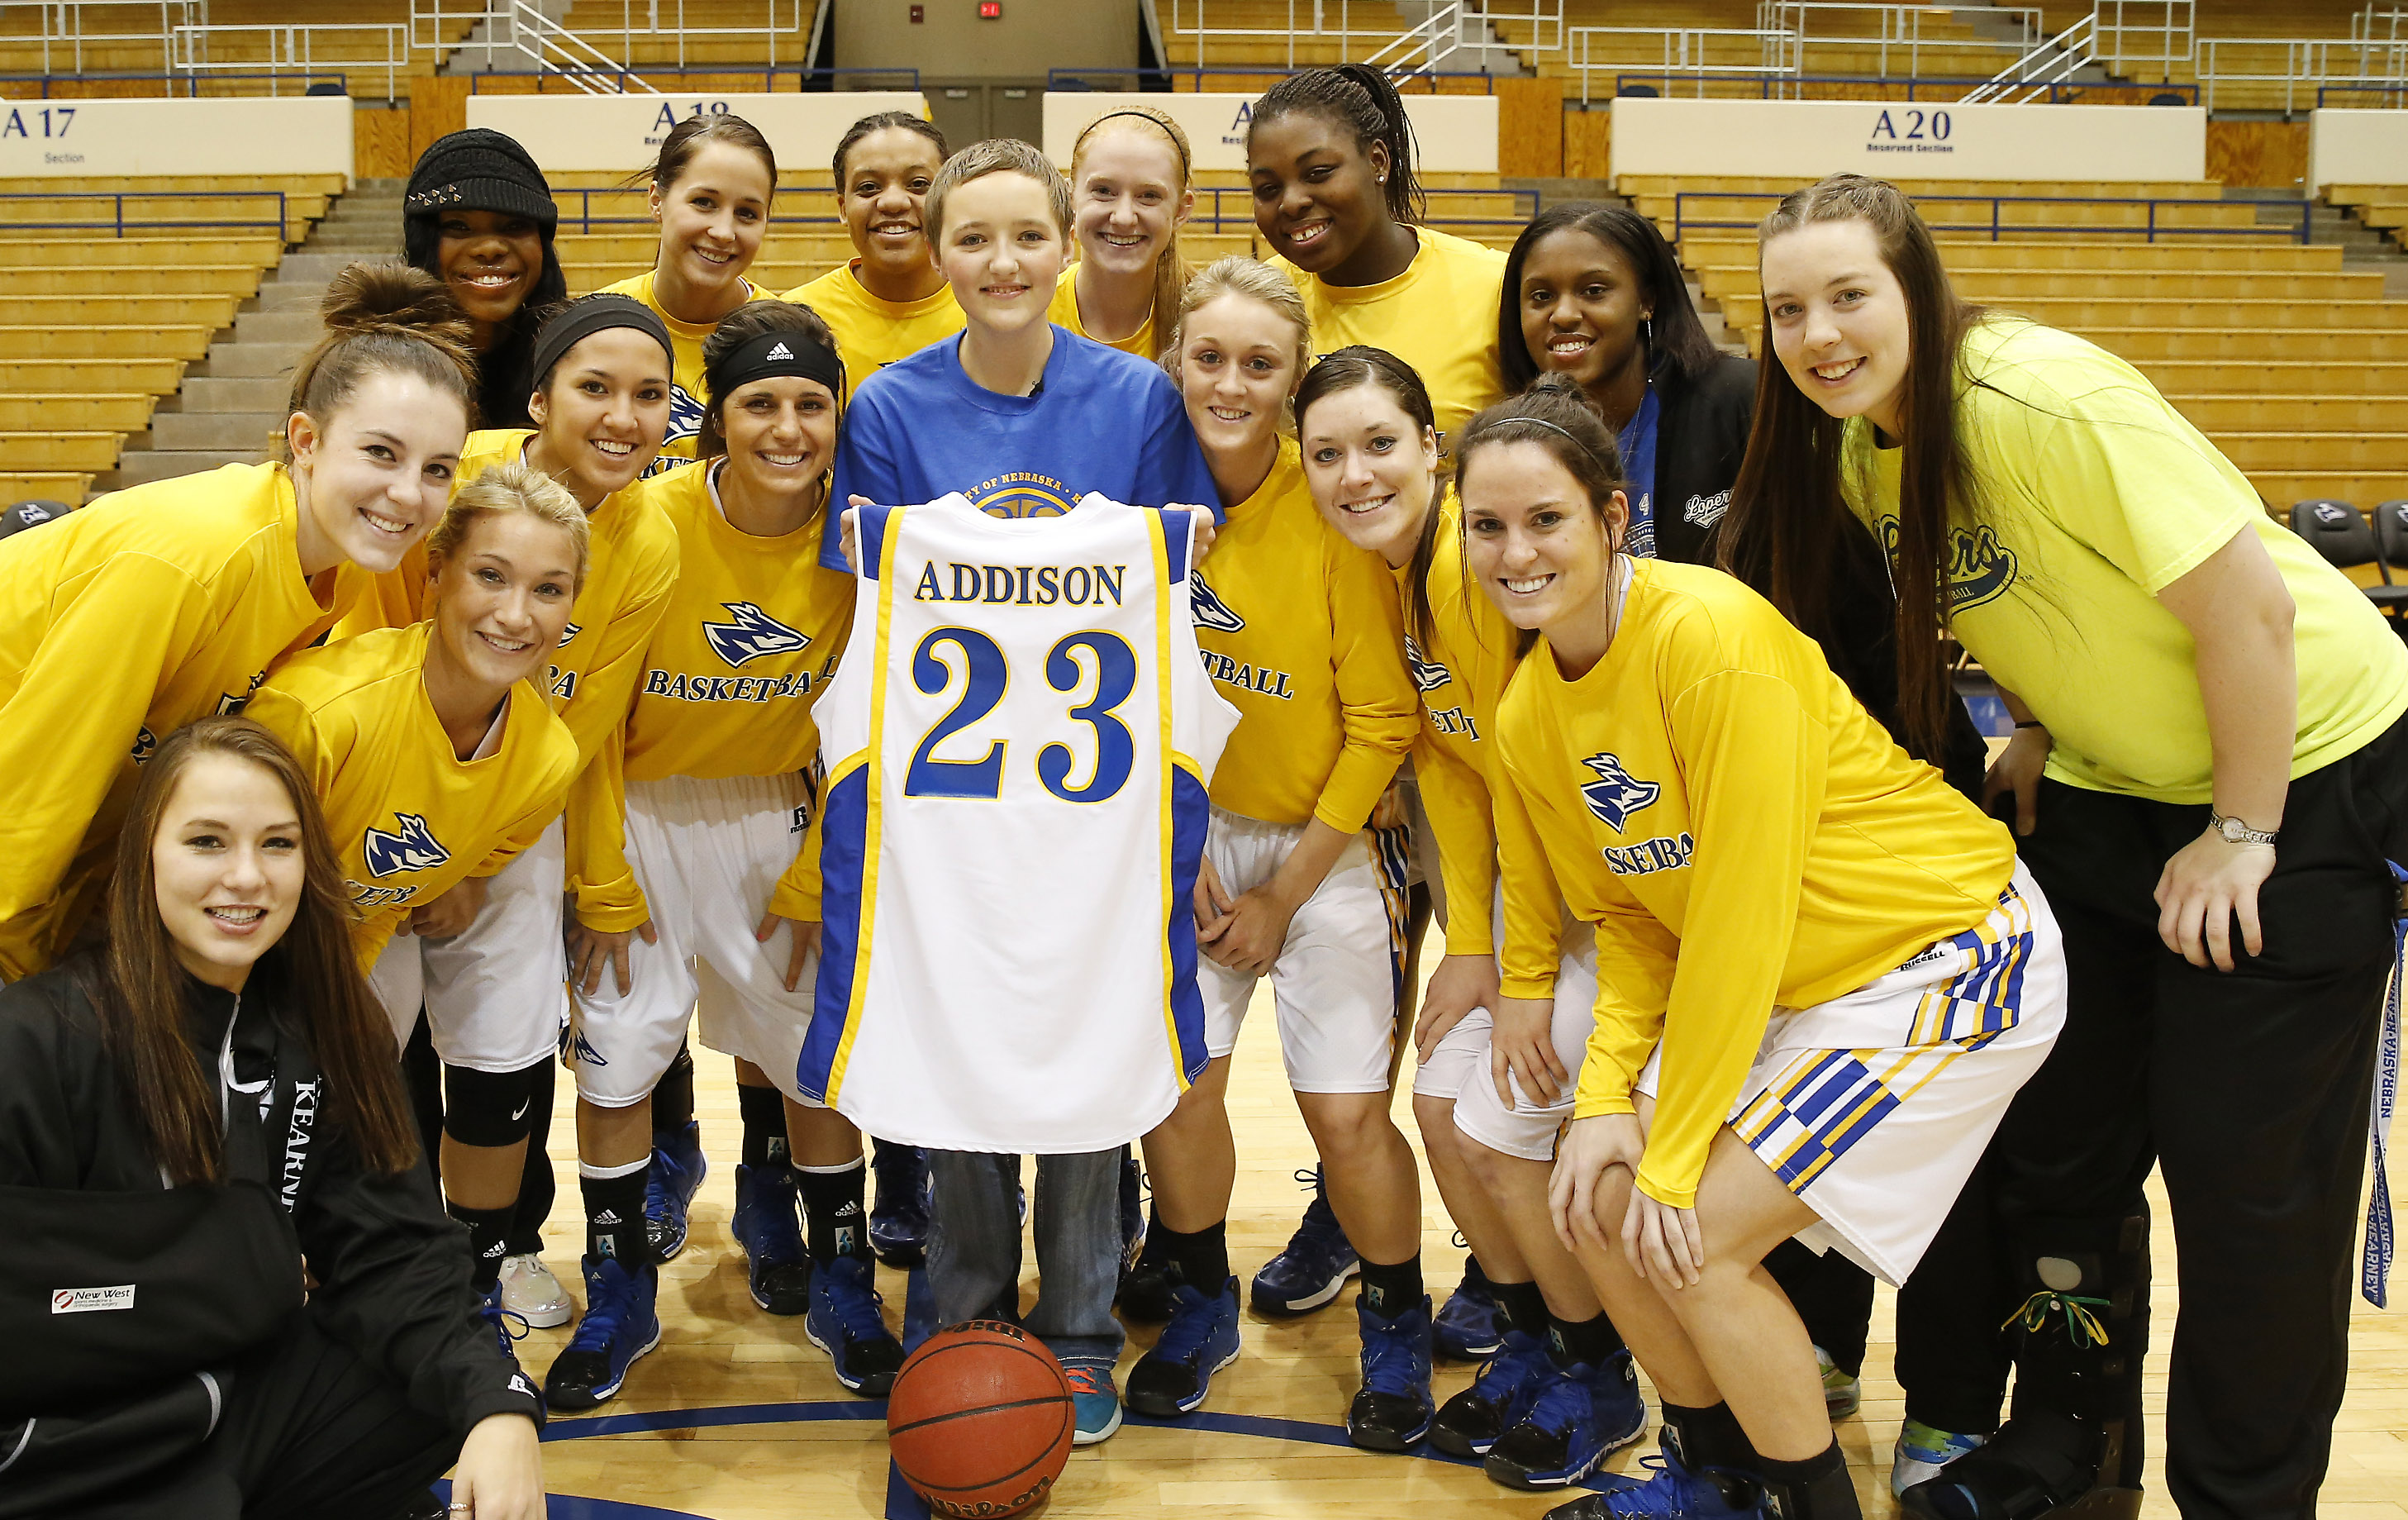 Members of the University of Nebraska at Kearney women's basketball team present Addison Samuelson with a team jersey Friday. Samuelson was named an honorary member of the team following surgery to remove a cancerous brain tumor. She is a sophomore at Cambridge High School. (Photo by Corby R. Dorsey/UNK Communications)